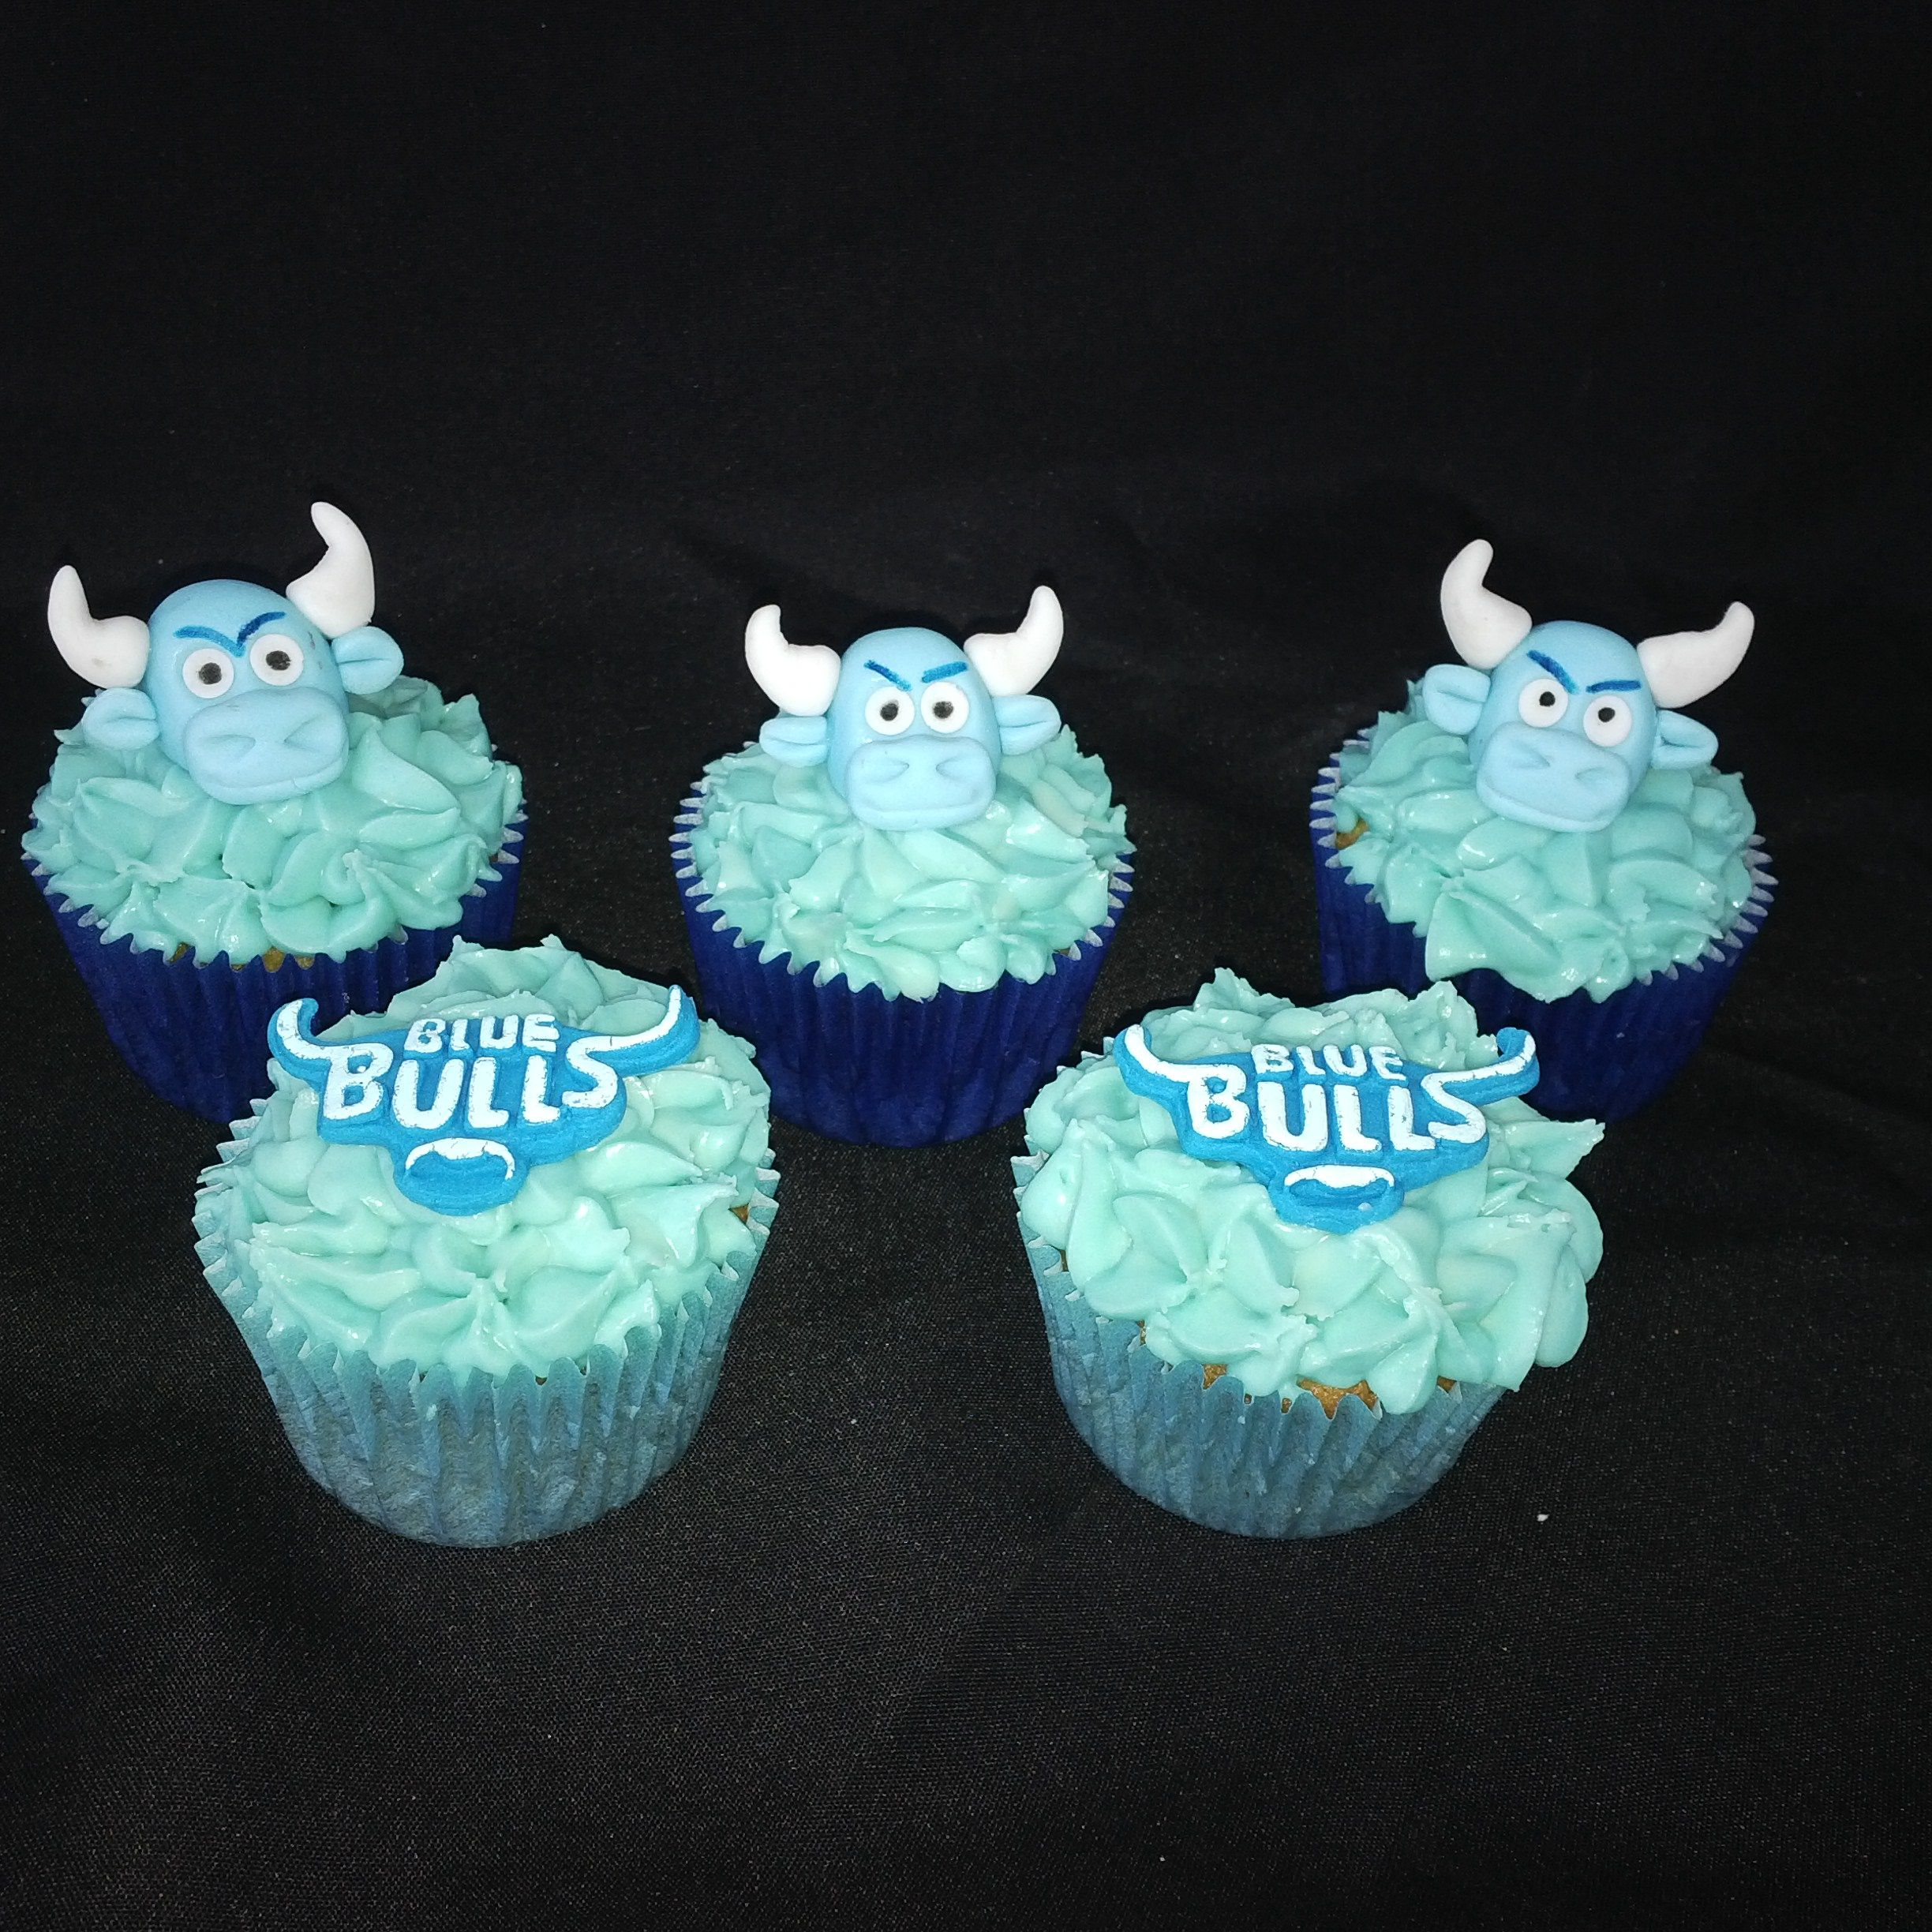 Blue bulls cupcakes cupcake toppers sold separately blue bulls cupcakes cupcake toppers sold separately bloemfontein cake cupcakes biocorpaavc Images